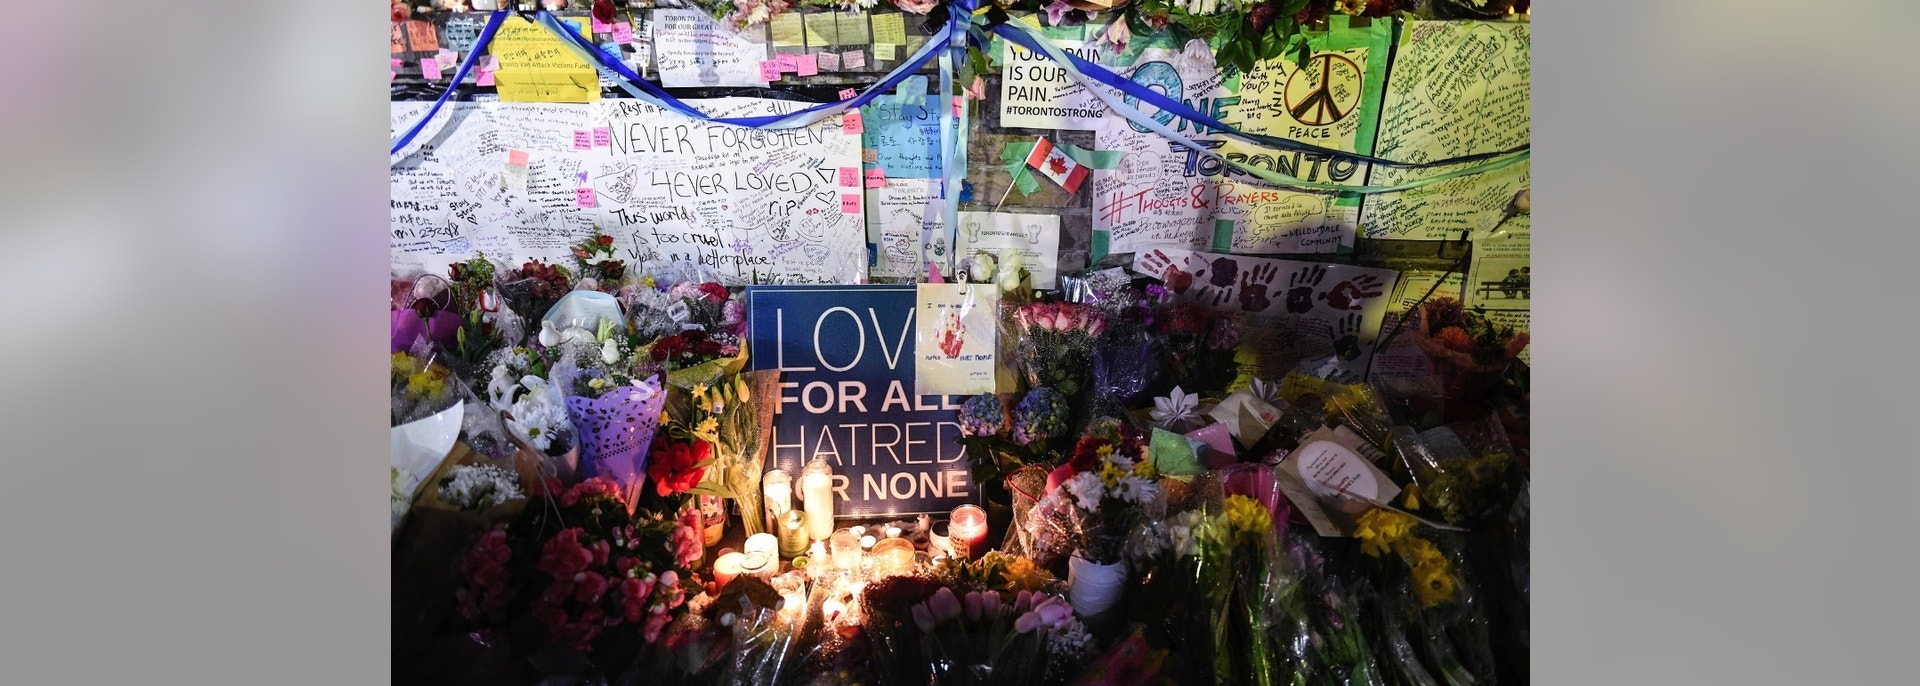 Flowers, notes and candles are piled high at a vigil on Yonge Street in Toronto, Tuesday, April 24, 2018, after multiple people were killed and others injured in Monday's deadly attack in which a van struck pedestrians on a Toronto sidewalk. (Galit Rodan/The Canadian Press via AP)